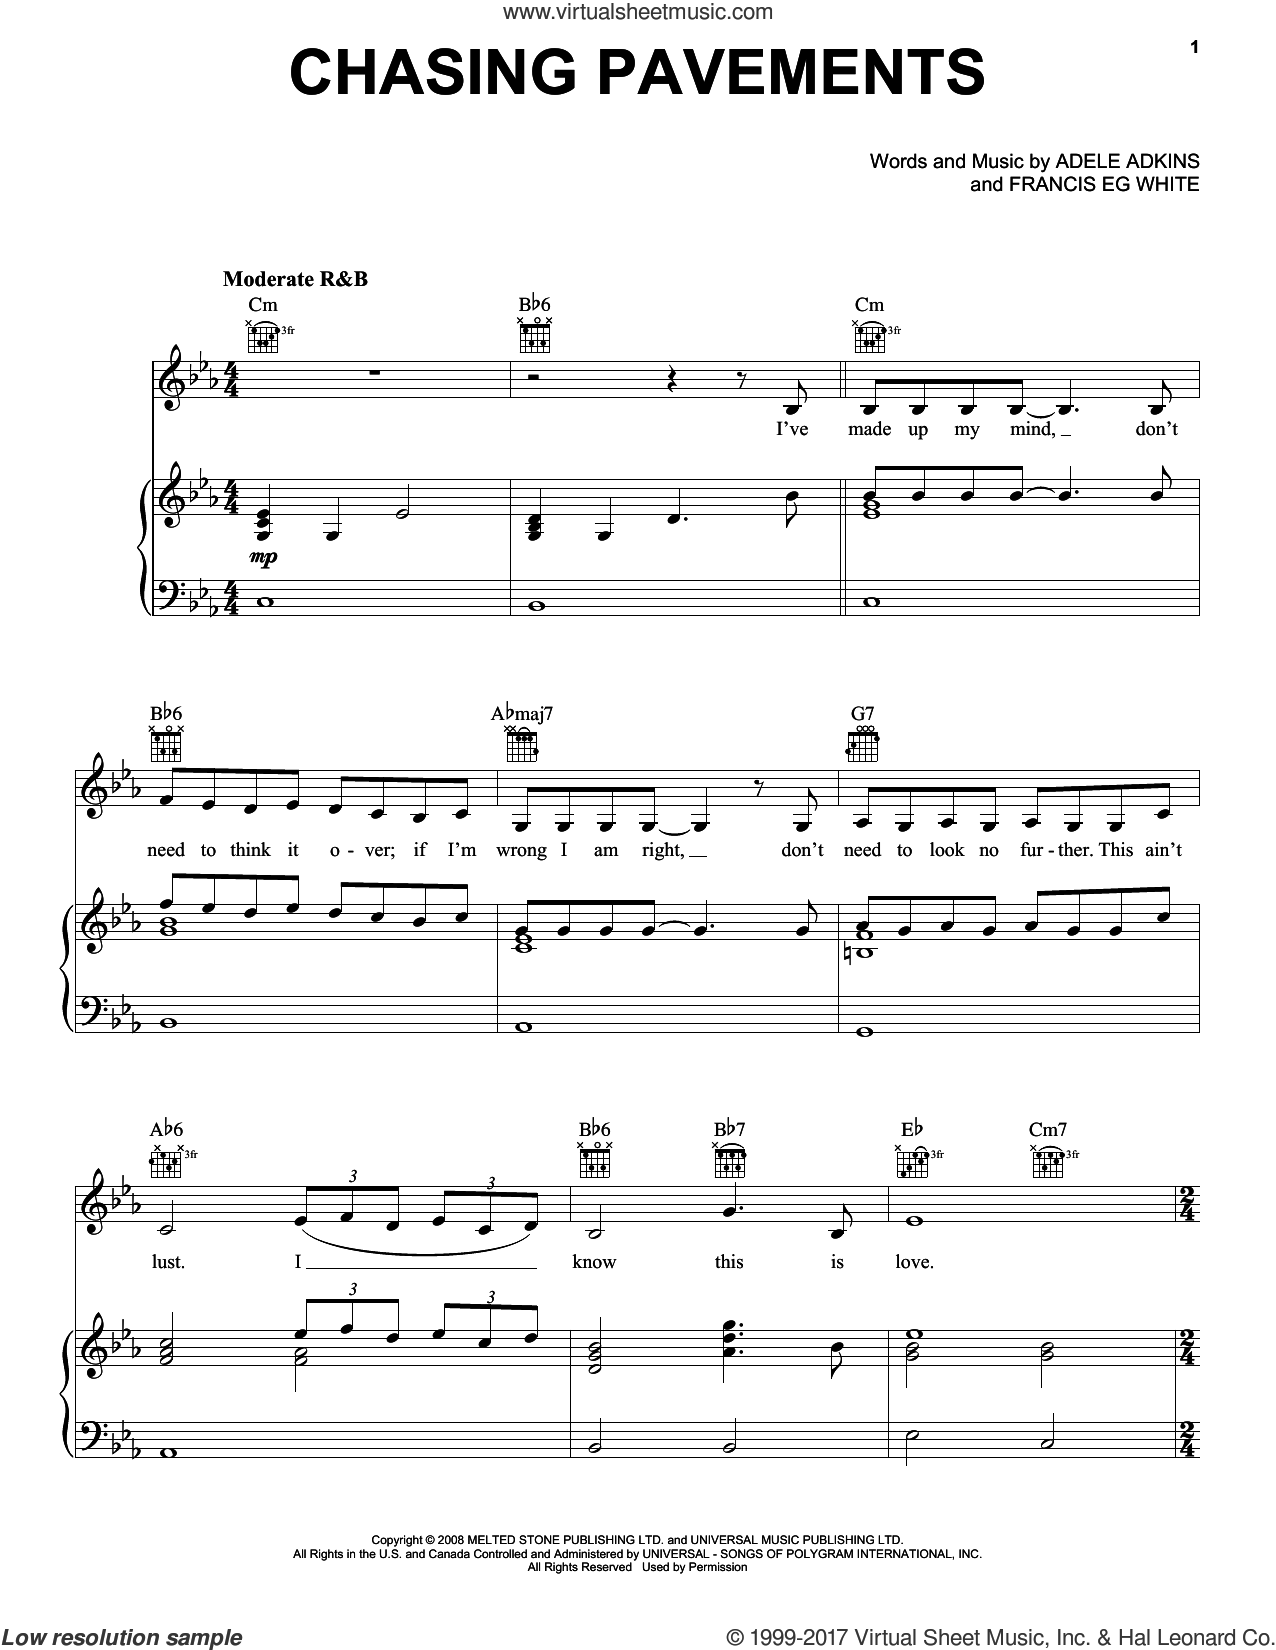 Adele Hits (complete set of parts) sheet music for voice, piano or guitar by Adele, Adele Adkins, Dan Wilson, Francis White, Fraser T. Smith, Paul Epworth and Skyfall (Movie), intermediate skill level